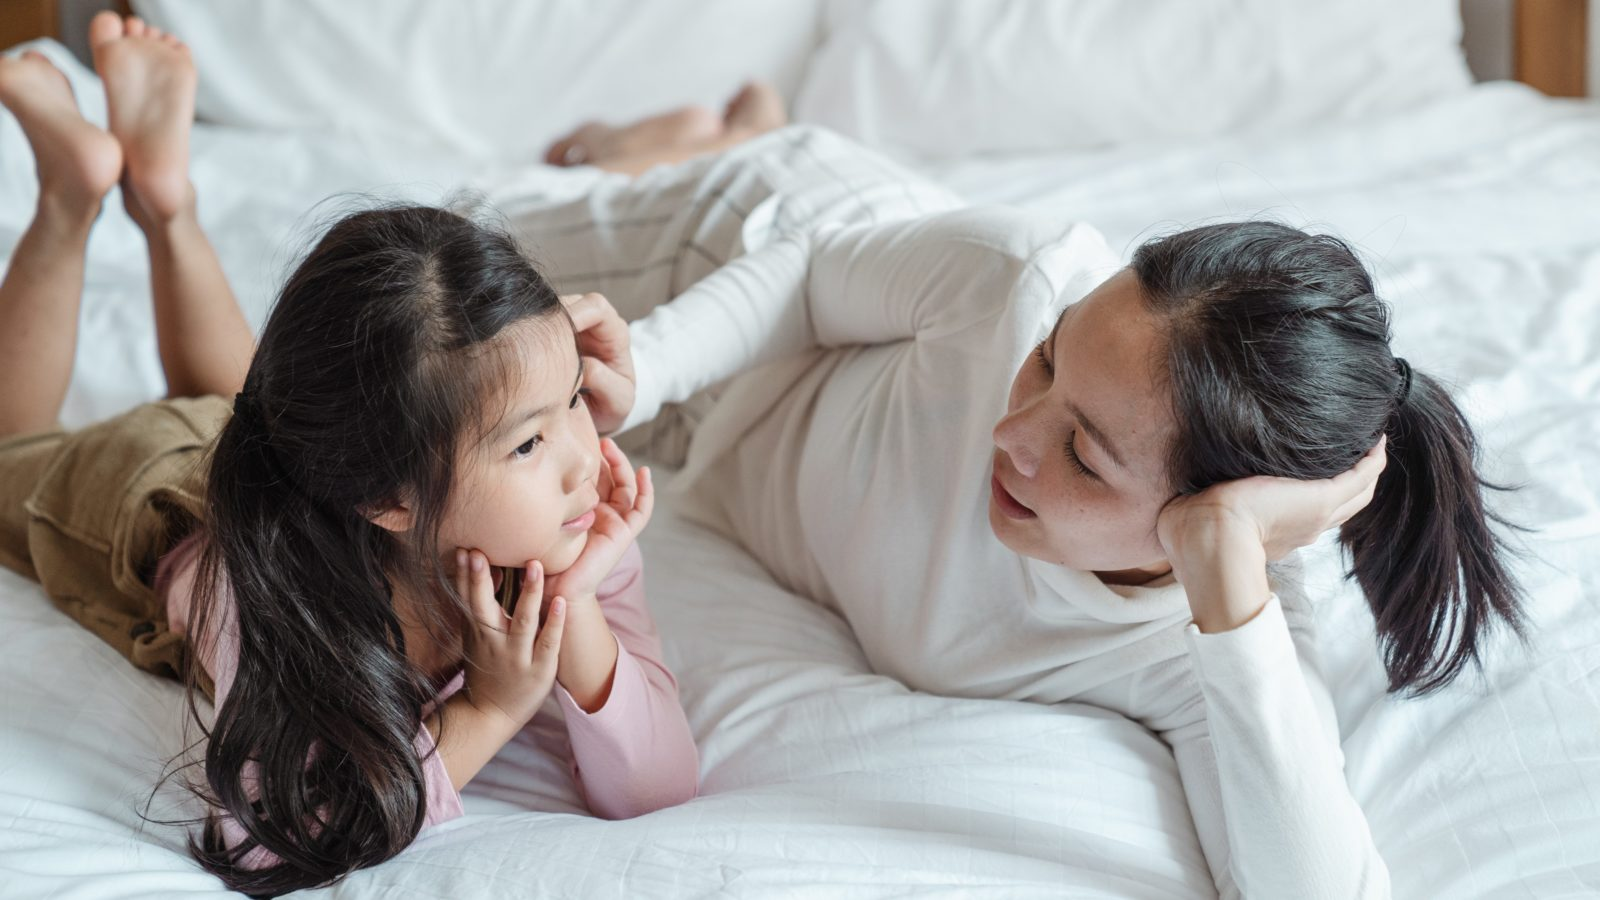 How to ask your child, 'R U OK?'